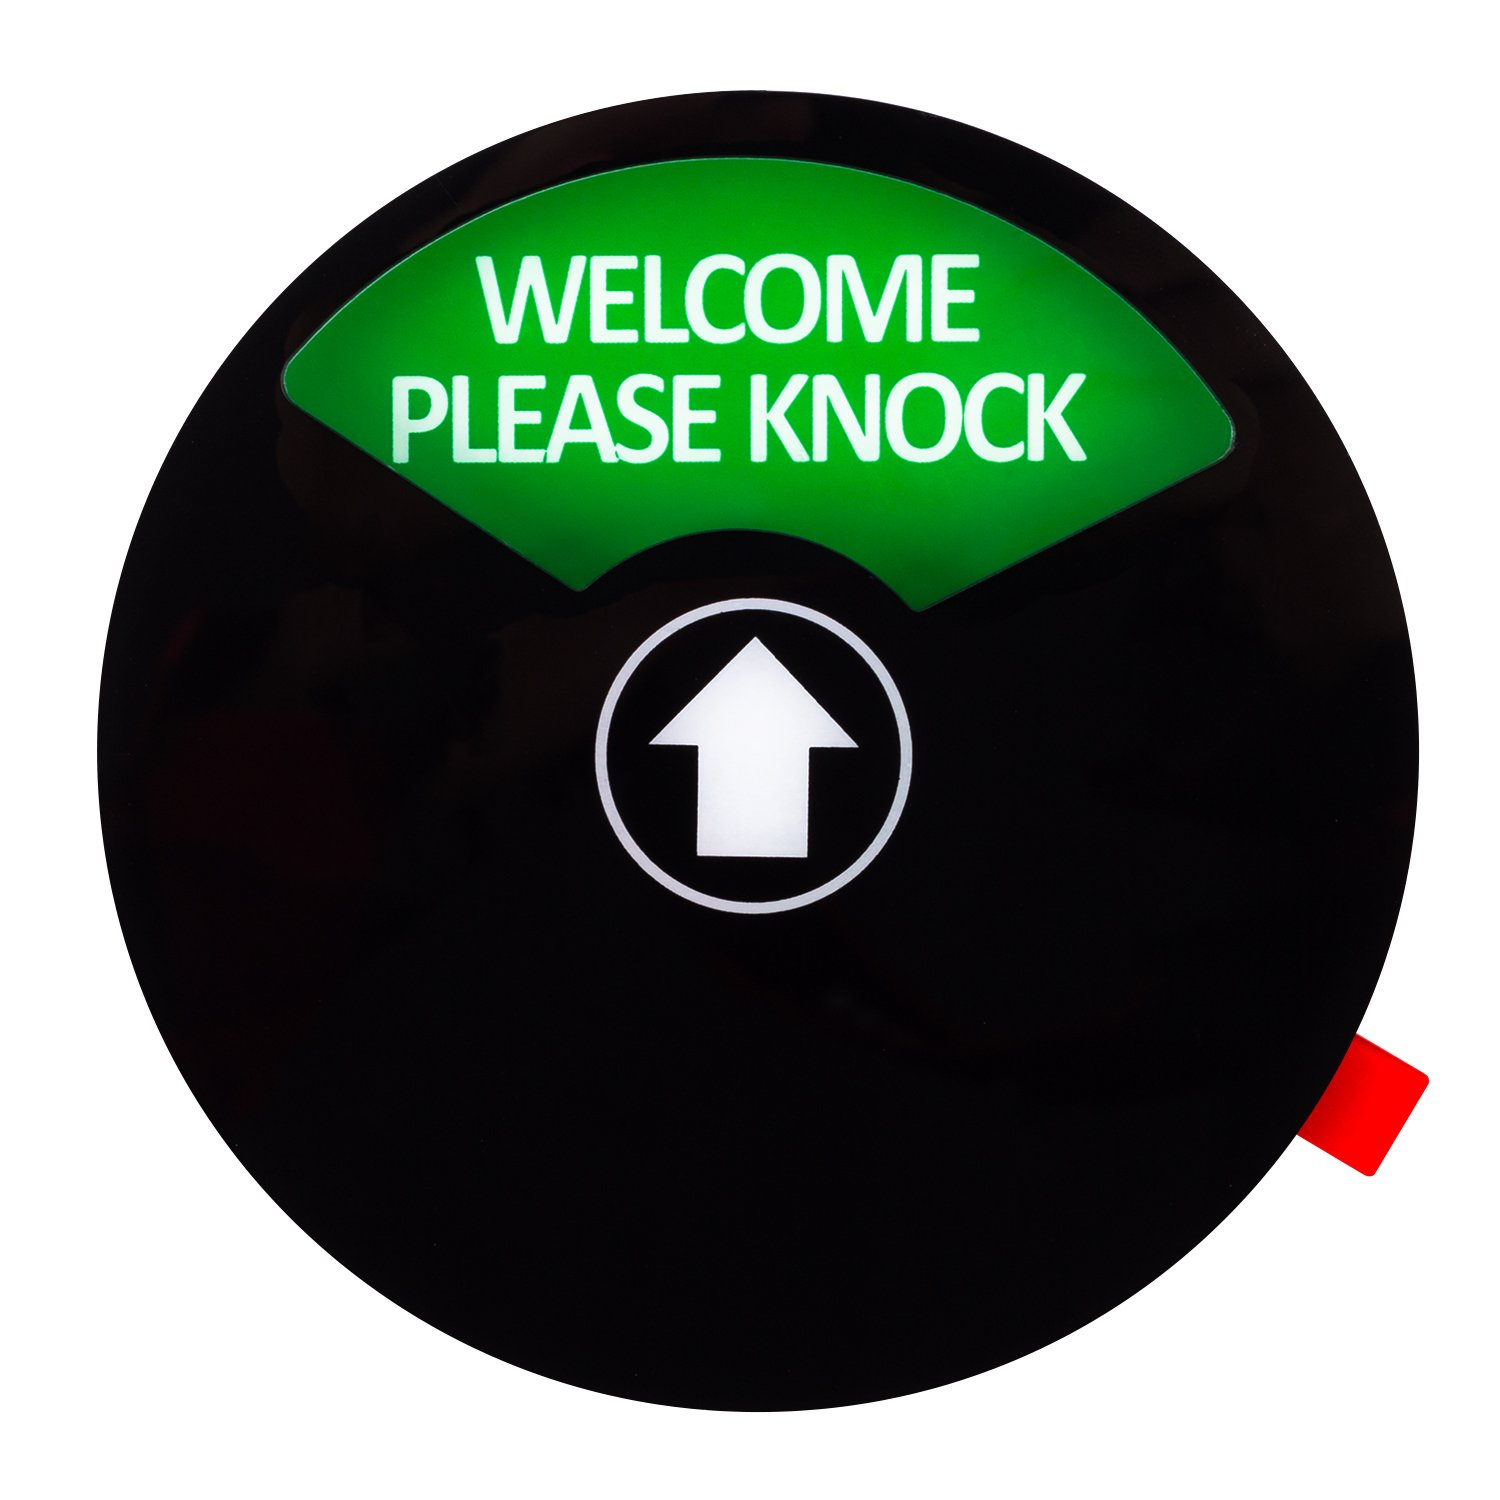 Kichwit Privacy Sign, Do Not Disturb Sign, Out of Office Sign, Welcome Please Knock Sign, Office Sign, Conference Sign for Offices, 5 Inch, Black by Kichwit (Image #3)